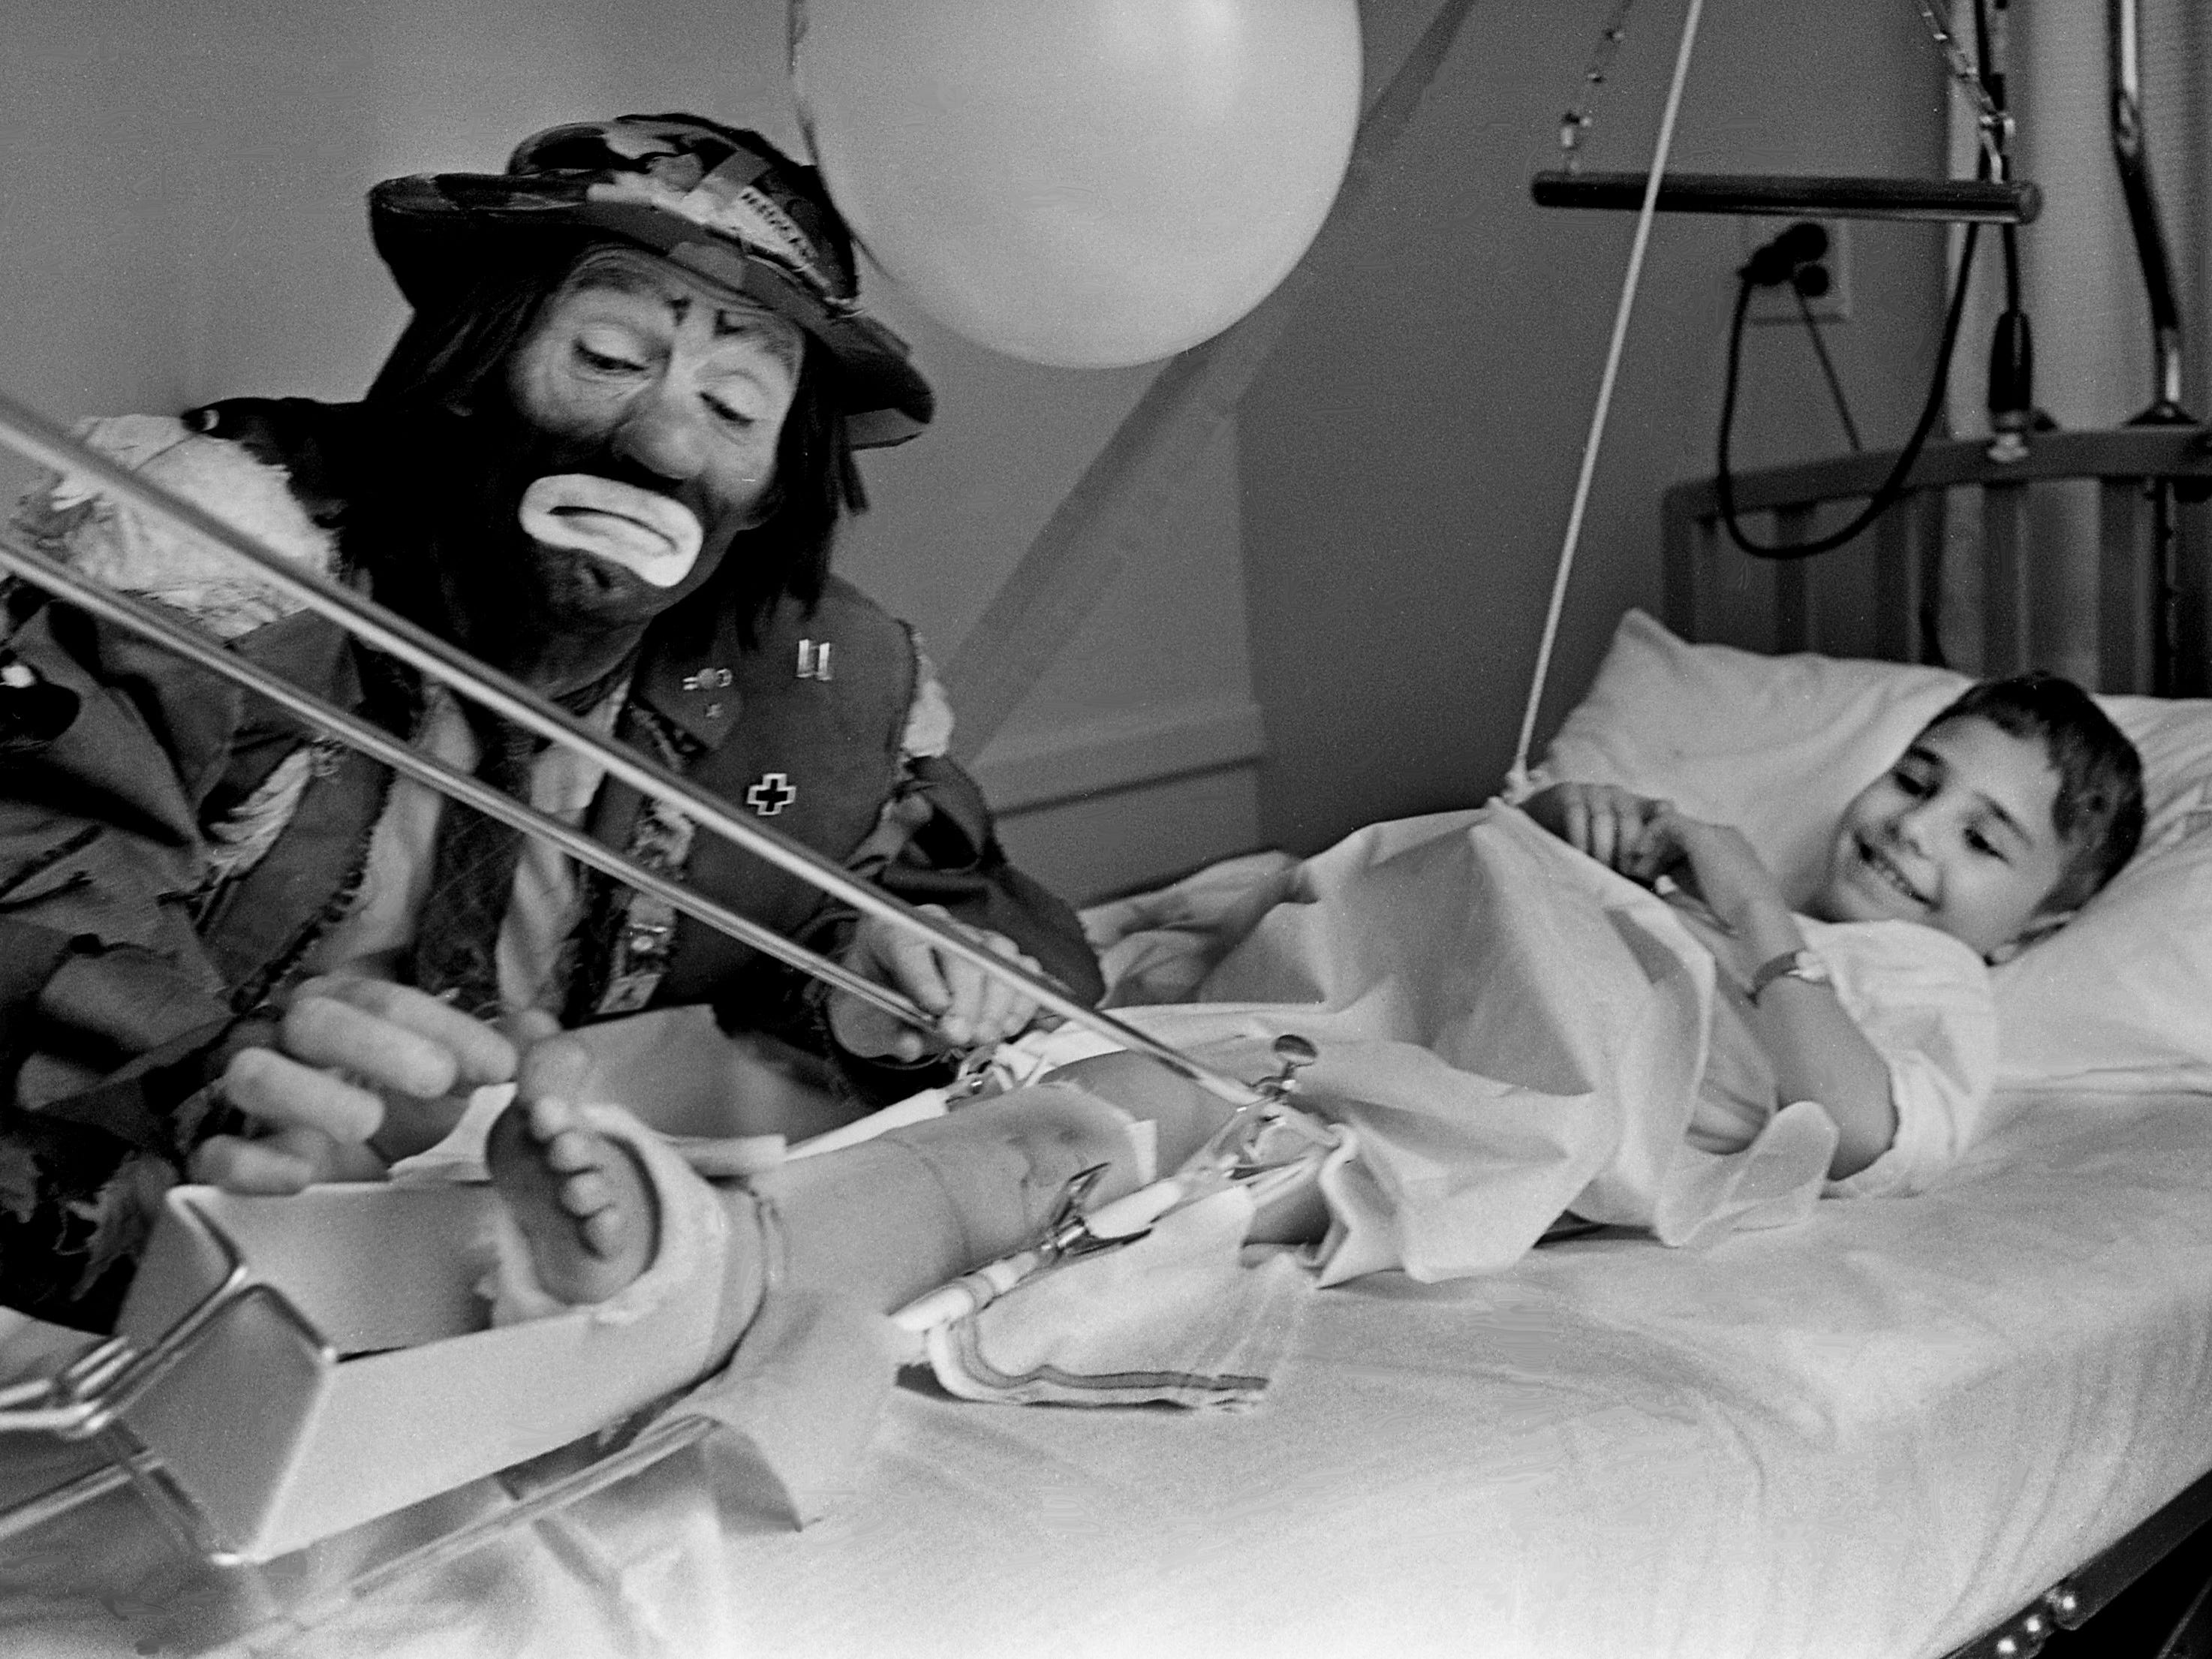 Celebrated clown Emmett Kelly Jr. gets a smile out of a young patient during a visit to the children's ward at Baptist Hospital on Jan. 29, 1969. He is dressed in the costume that his father, the world-famous clown of the same name, made famous.